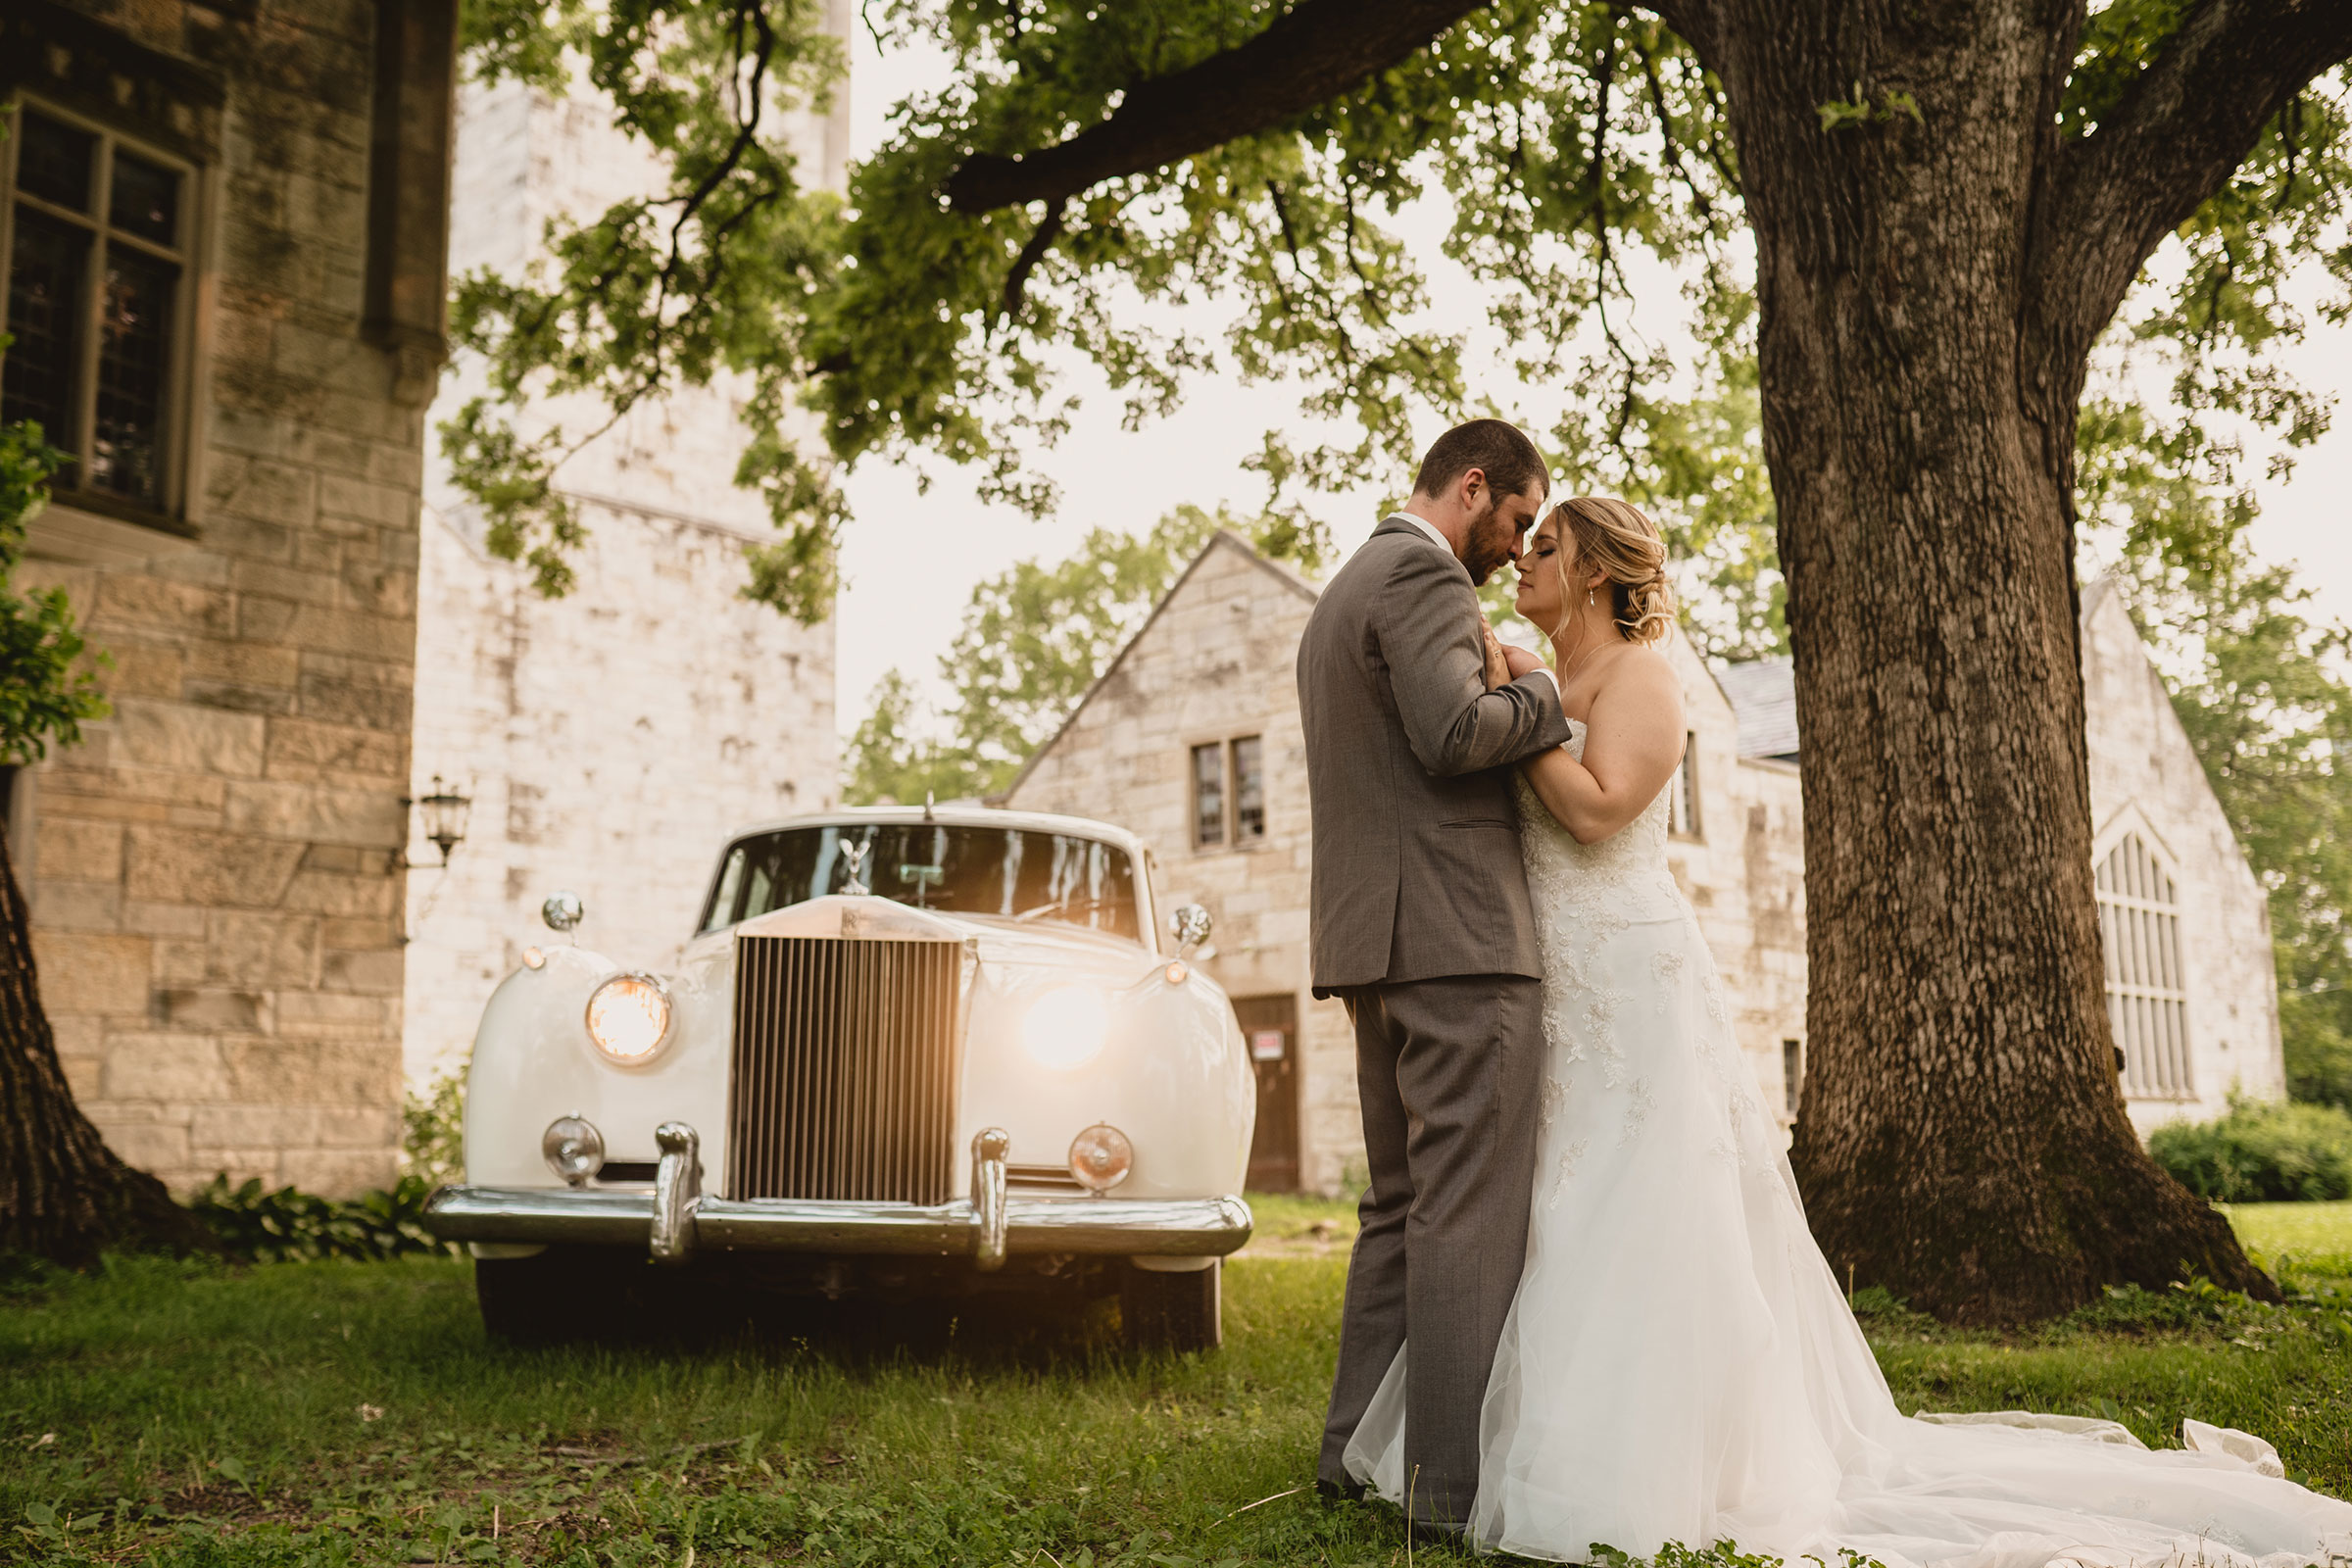 bride-groom-holding-each-other-while-standing-in-front-of-rolls-royce-decades-event-center-building-desmoines-iowa-raelyn-ramey-photography..jpg